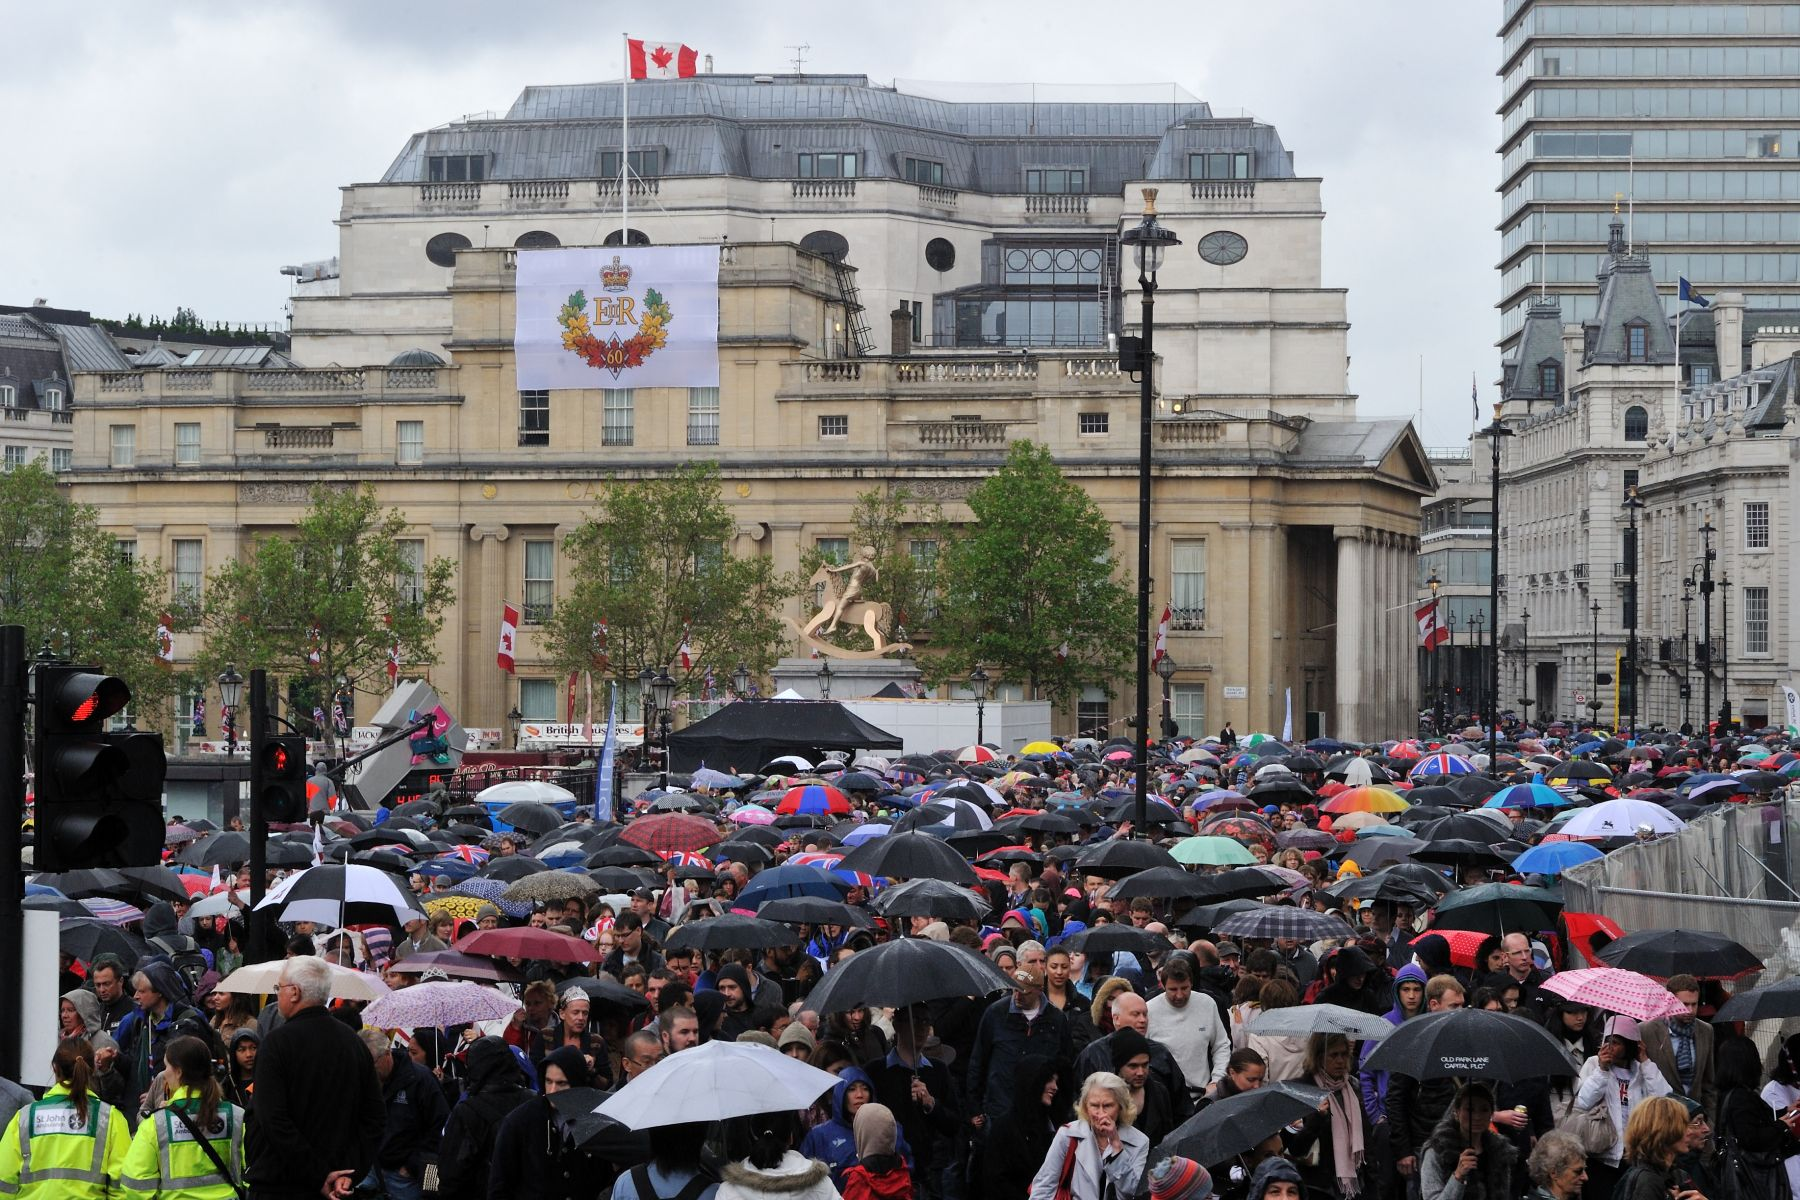 Thousands of people were in front of Canada House, in Trafalgar Square, to see the Royal Family Carriage Procession on giant screens.